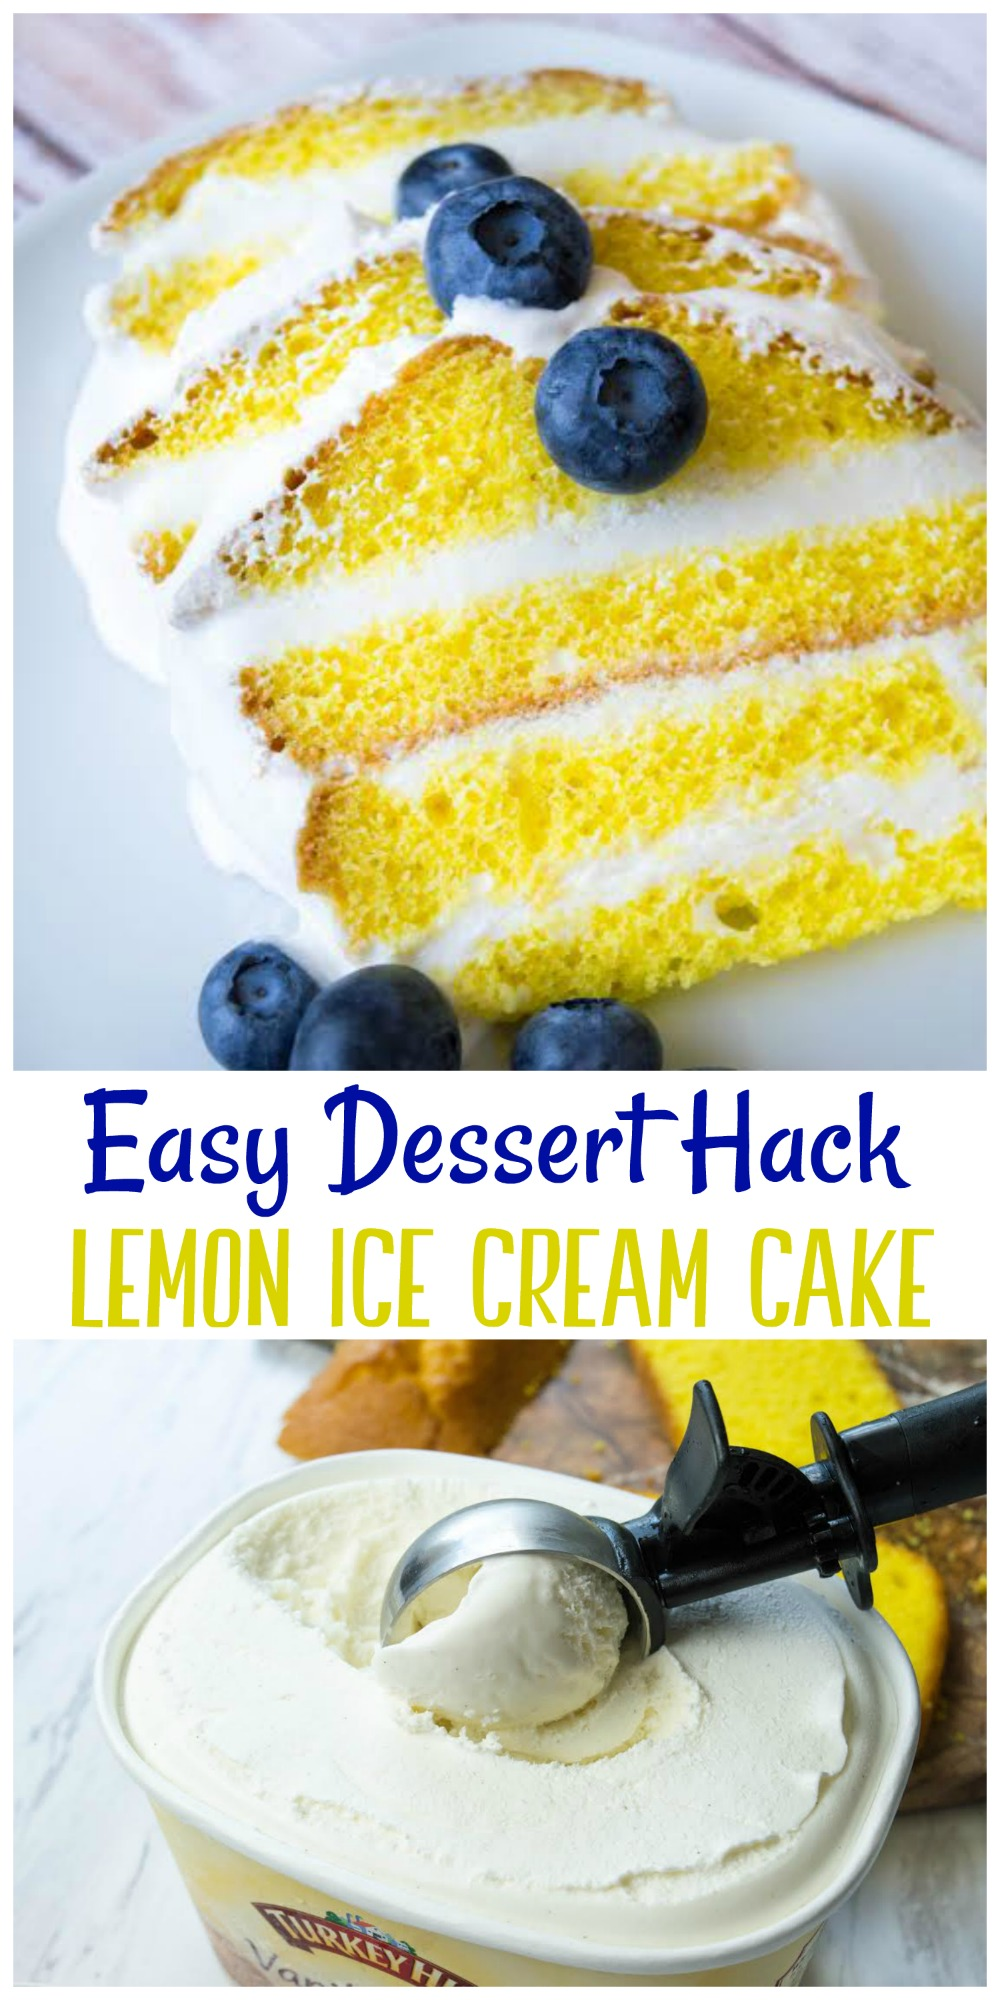 This Lemon Ice Cream Cake is an easy dessert hack that people will love! It's easy to make and will be a sure fire hit at your next get-together!